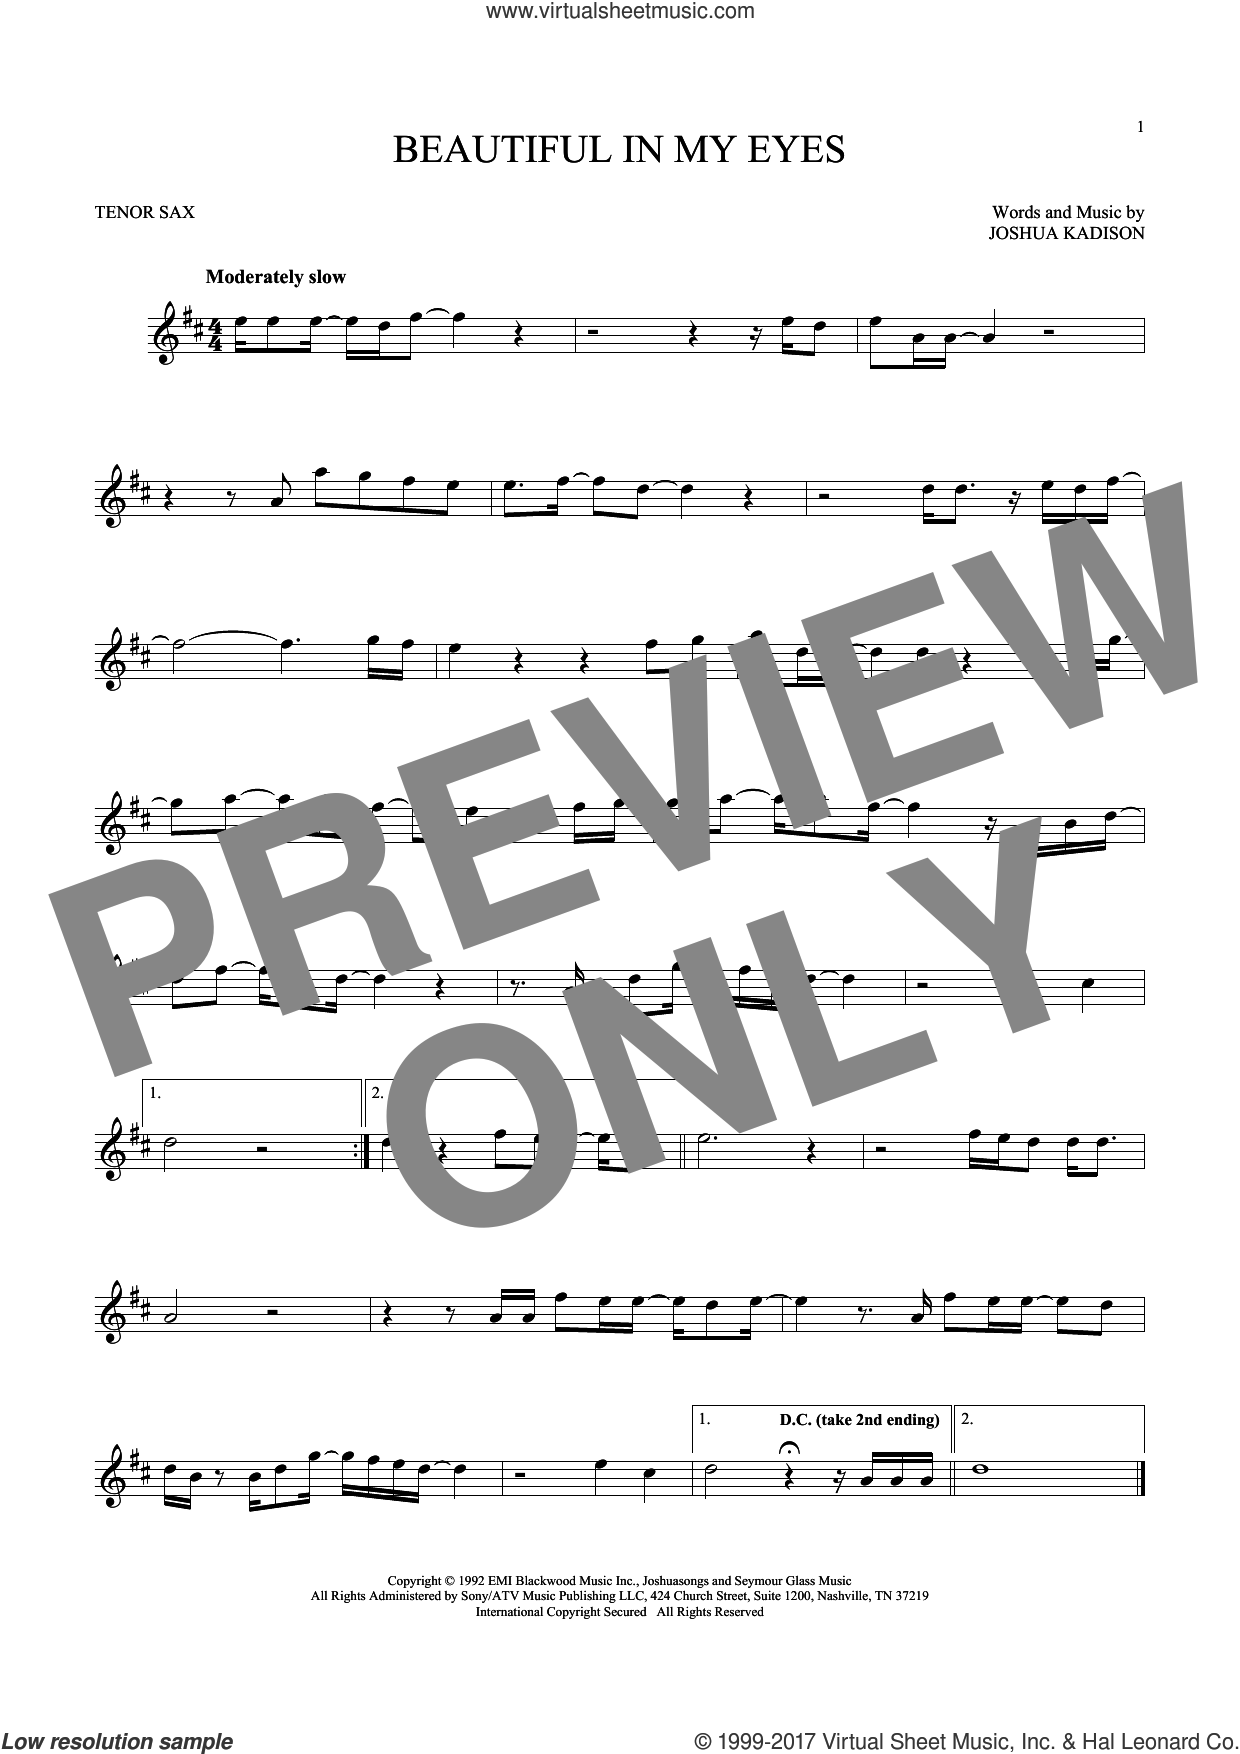 Beautiful In My Eyes sheet music for tenor saxophone solo by Joshua Kadison, intermediate skill level